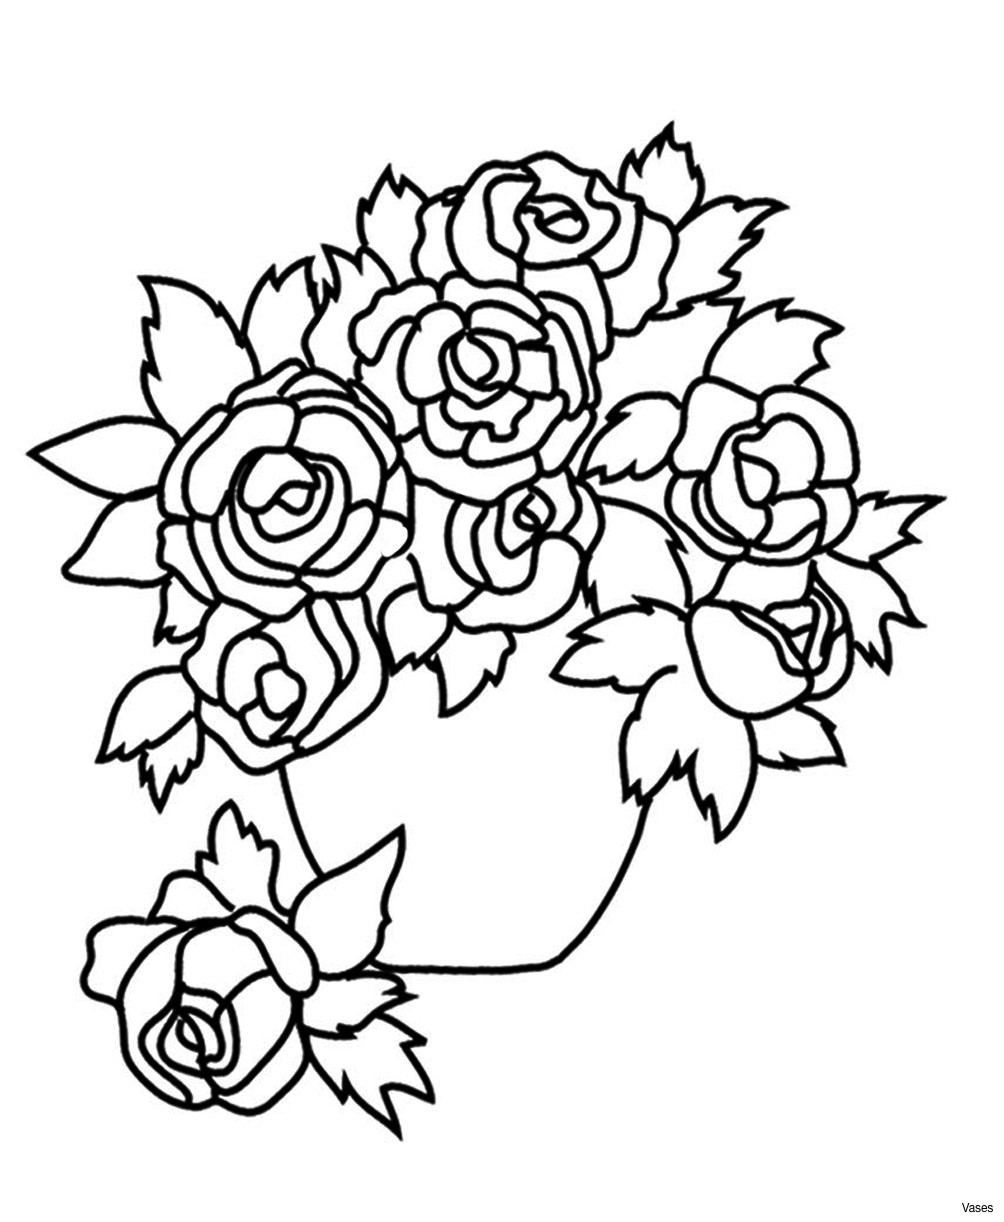 soccer ball flower vases of vase coloring pages 2787936 intended for letter v is for vase coloring page free printable coloring pages